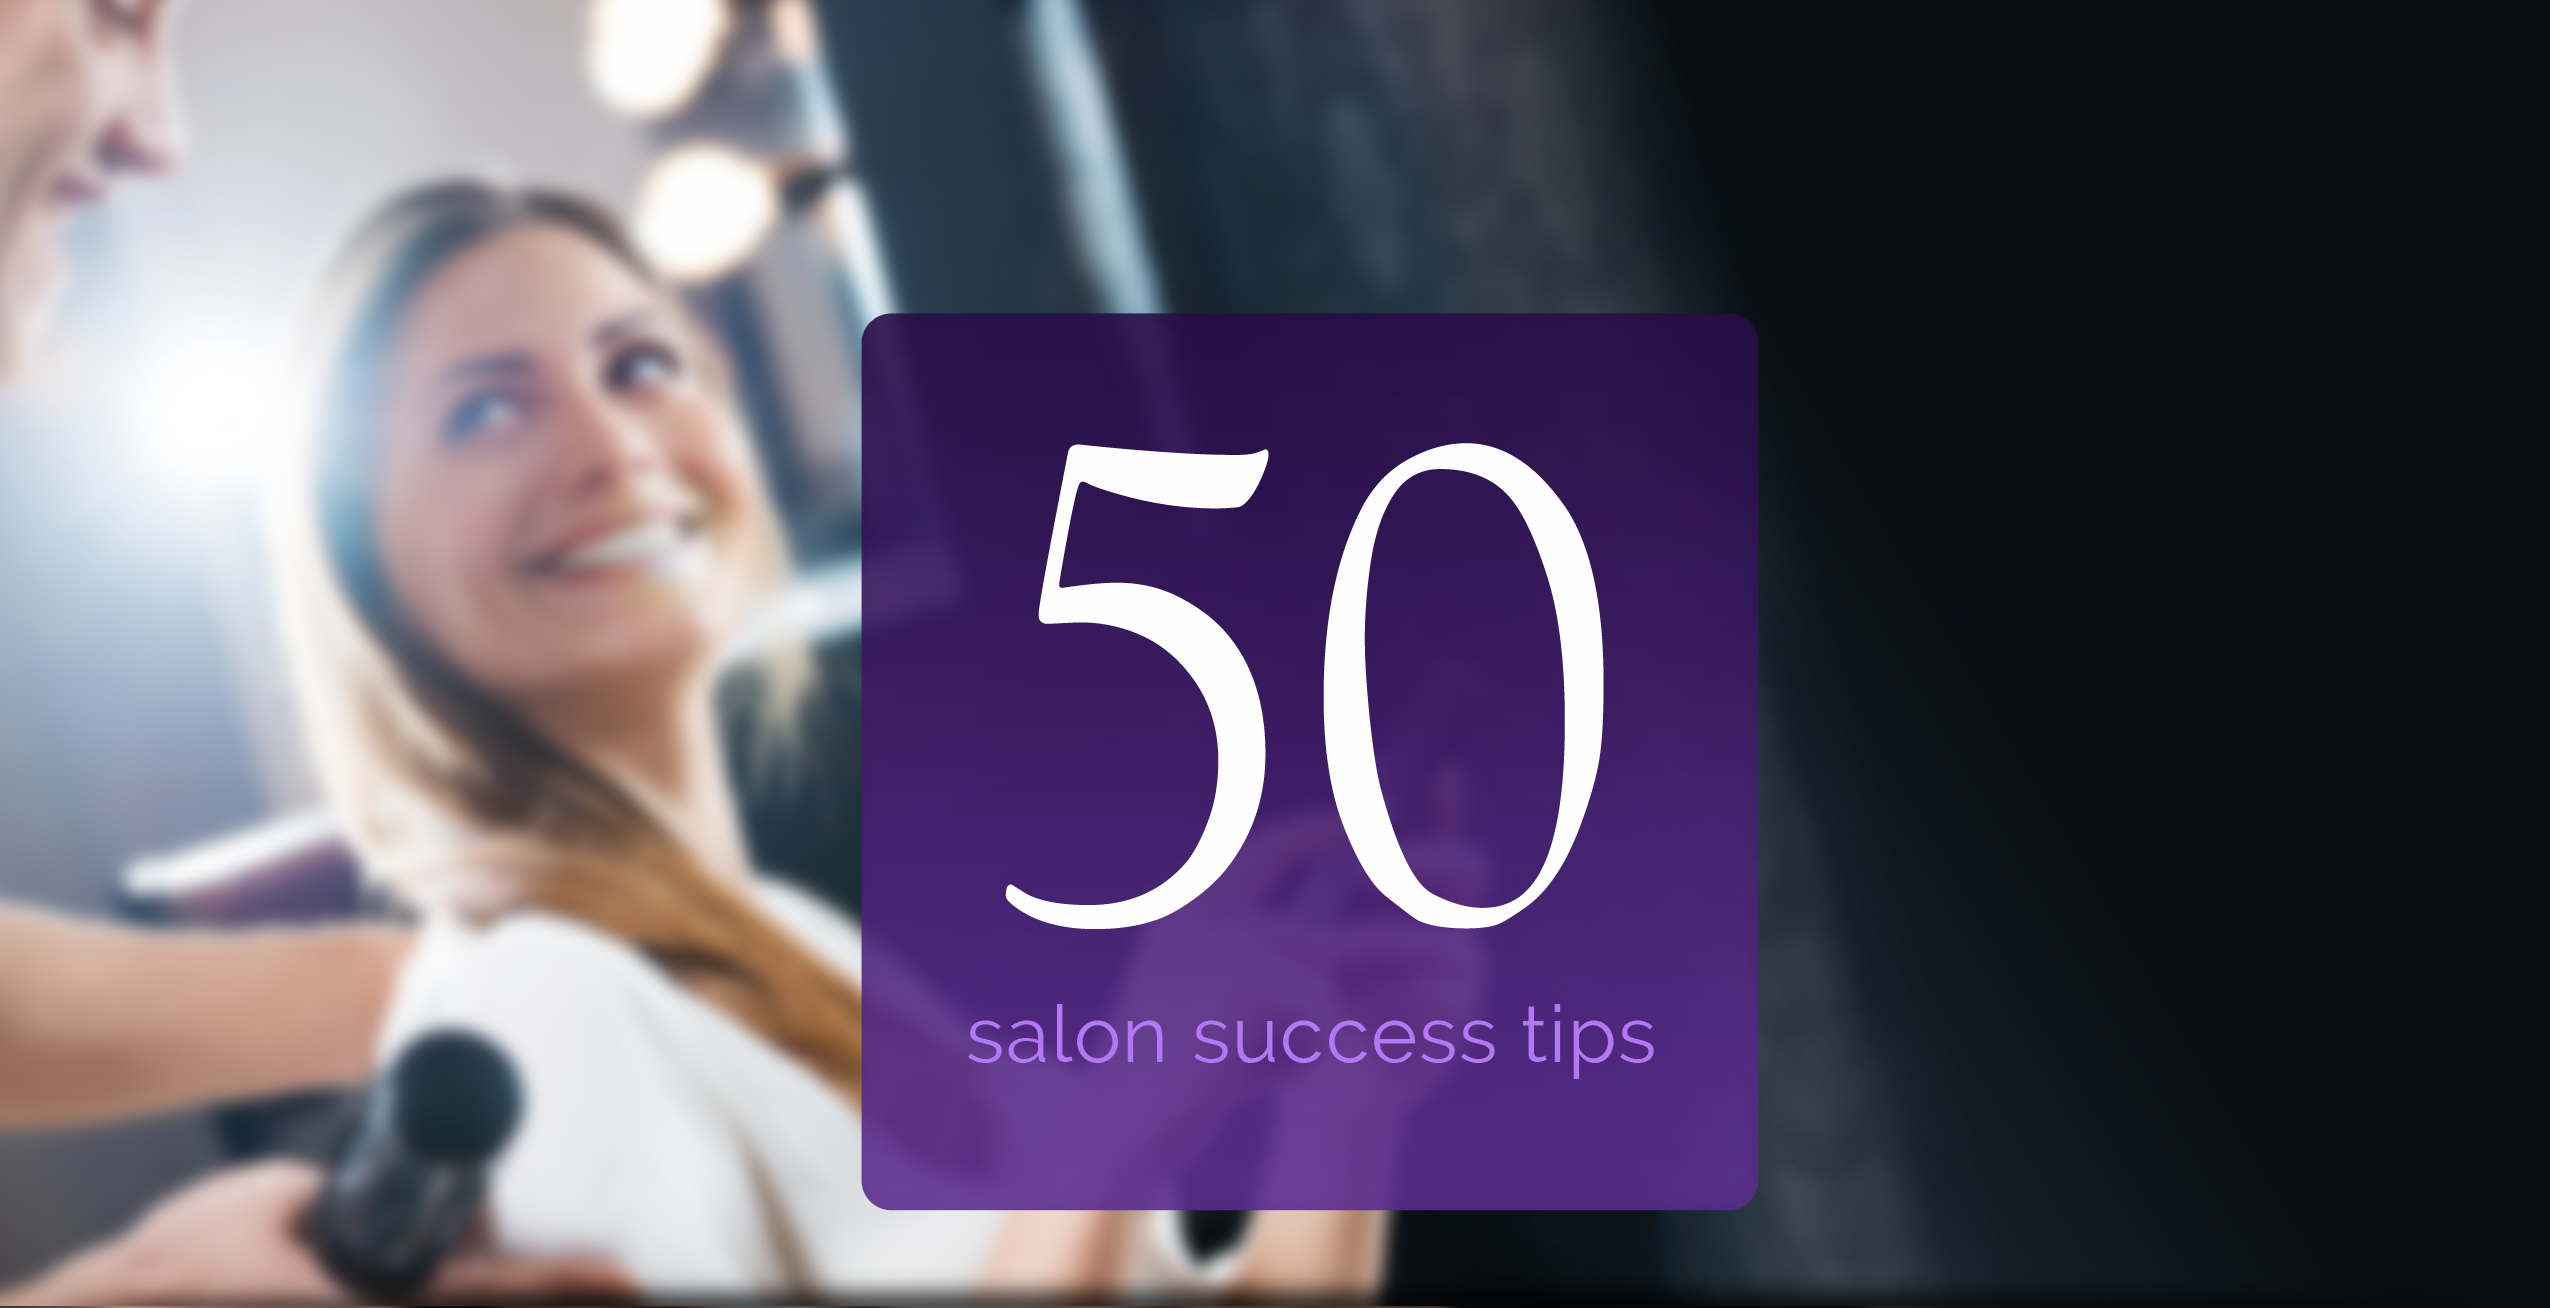 BONUS TIP! We not only wrote 50 tips to help transform your client experience, we created a product that helps you put all of them into action!